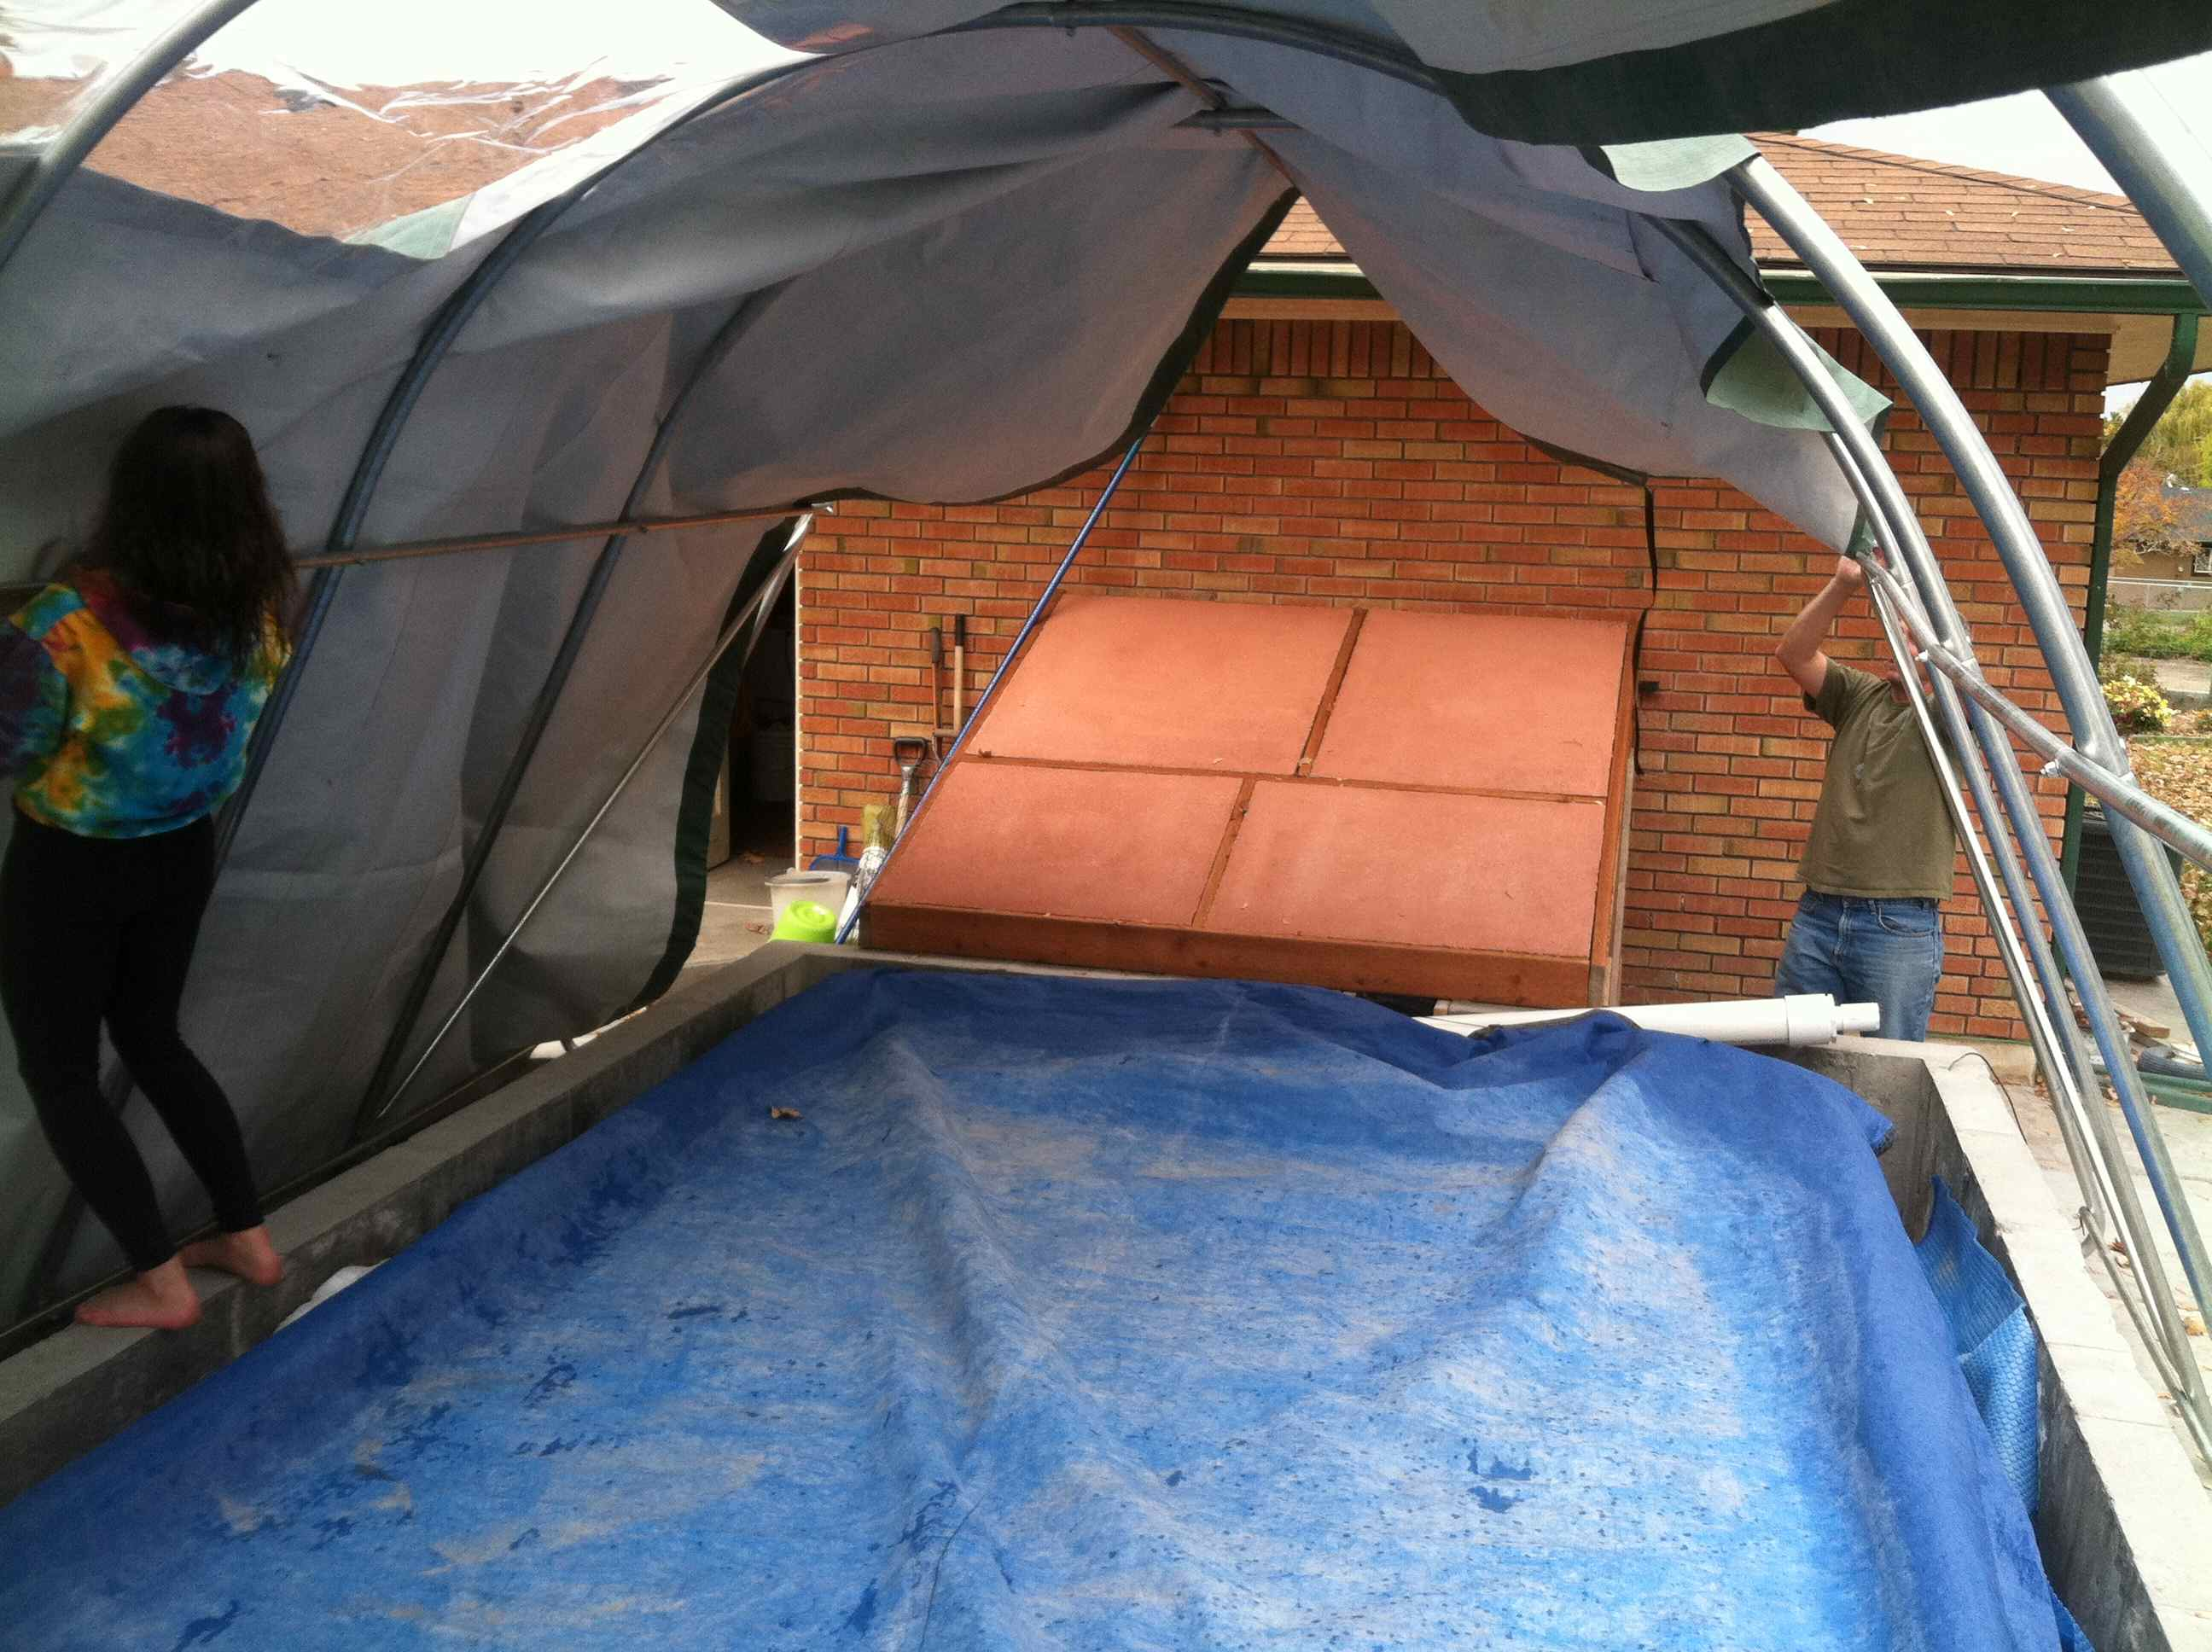 How To Turn An Outdoor Swimming Pool Into An Indoor Swimming Pool For The Winter Part 1